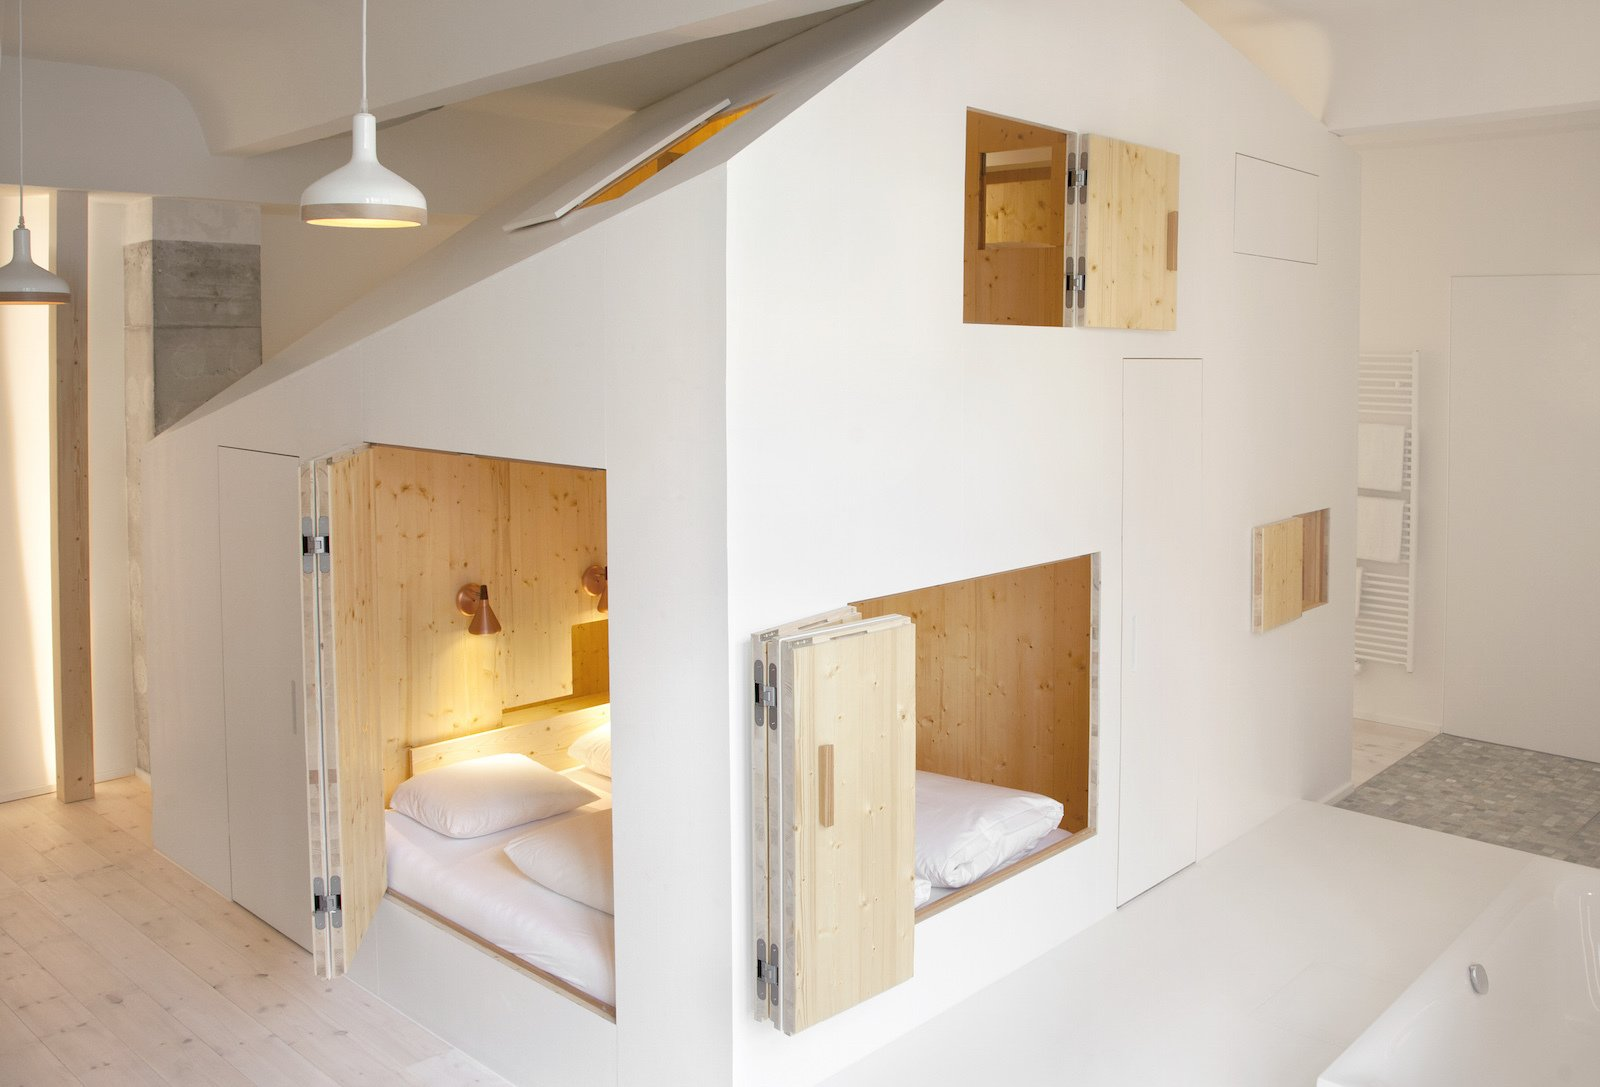 Bedroom, Pendant Lighting, Bed, Wall Lighting, and Light Hardwood Floor Following the house-within-a-house concept, this playful playhouse-like addition features an all-plywood interior.  Best Photos from Stoke Your Imagination With This Playhouse-Like Suite in Berlin